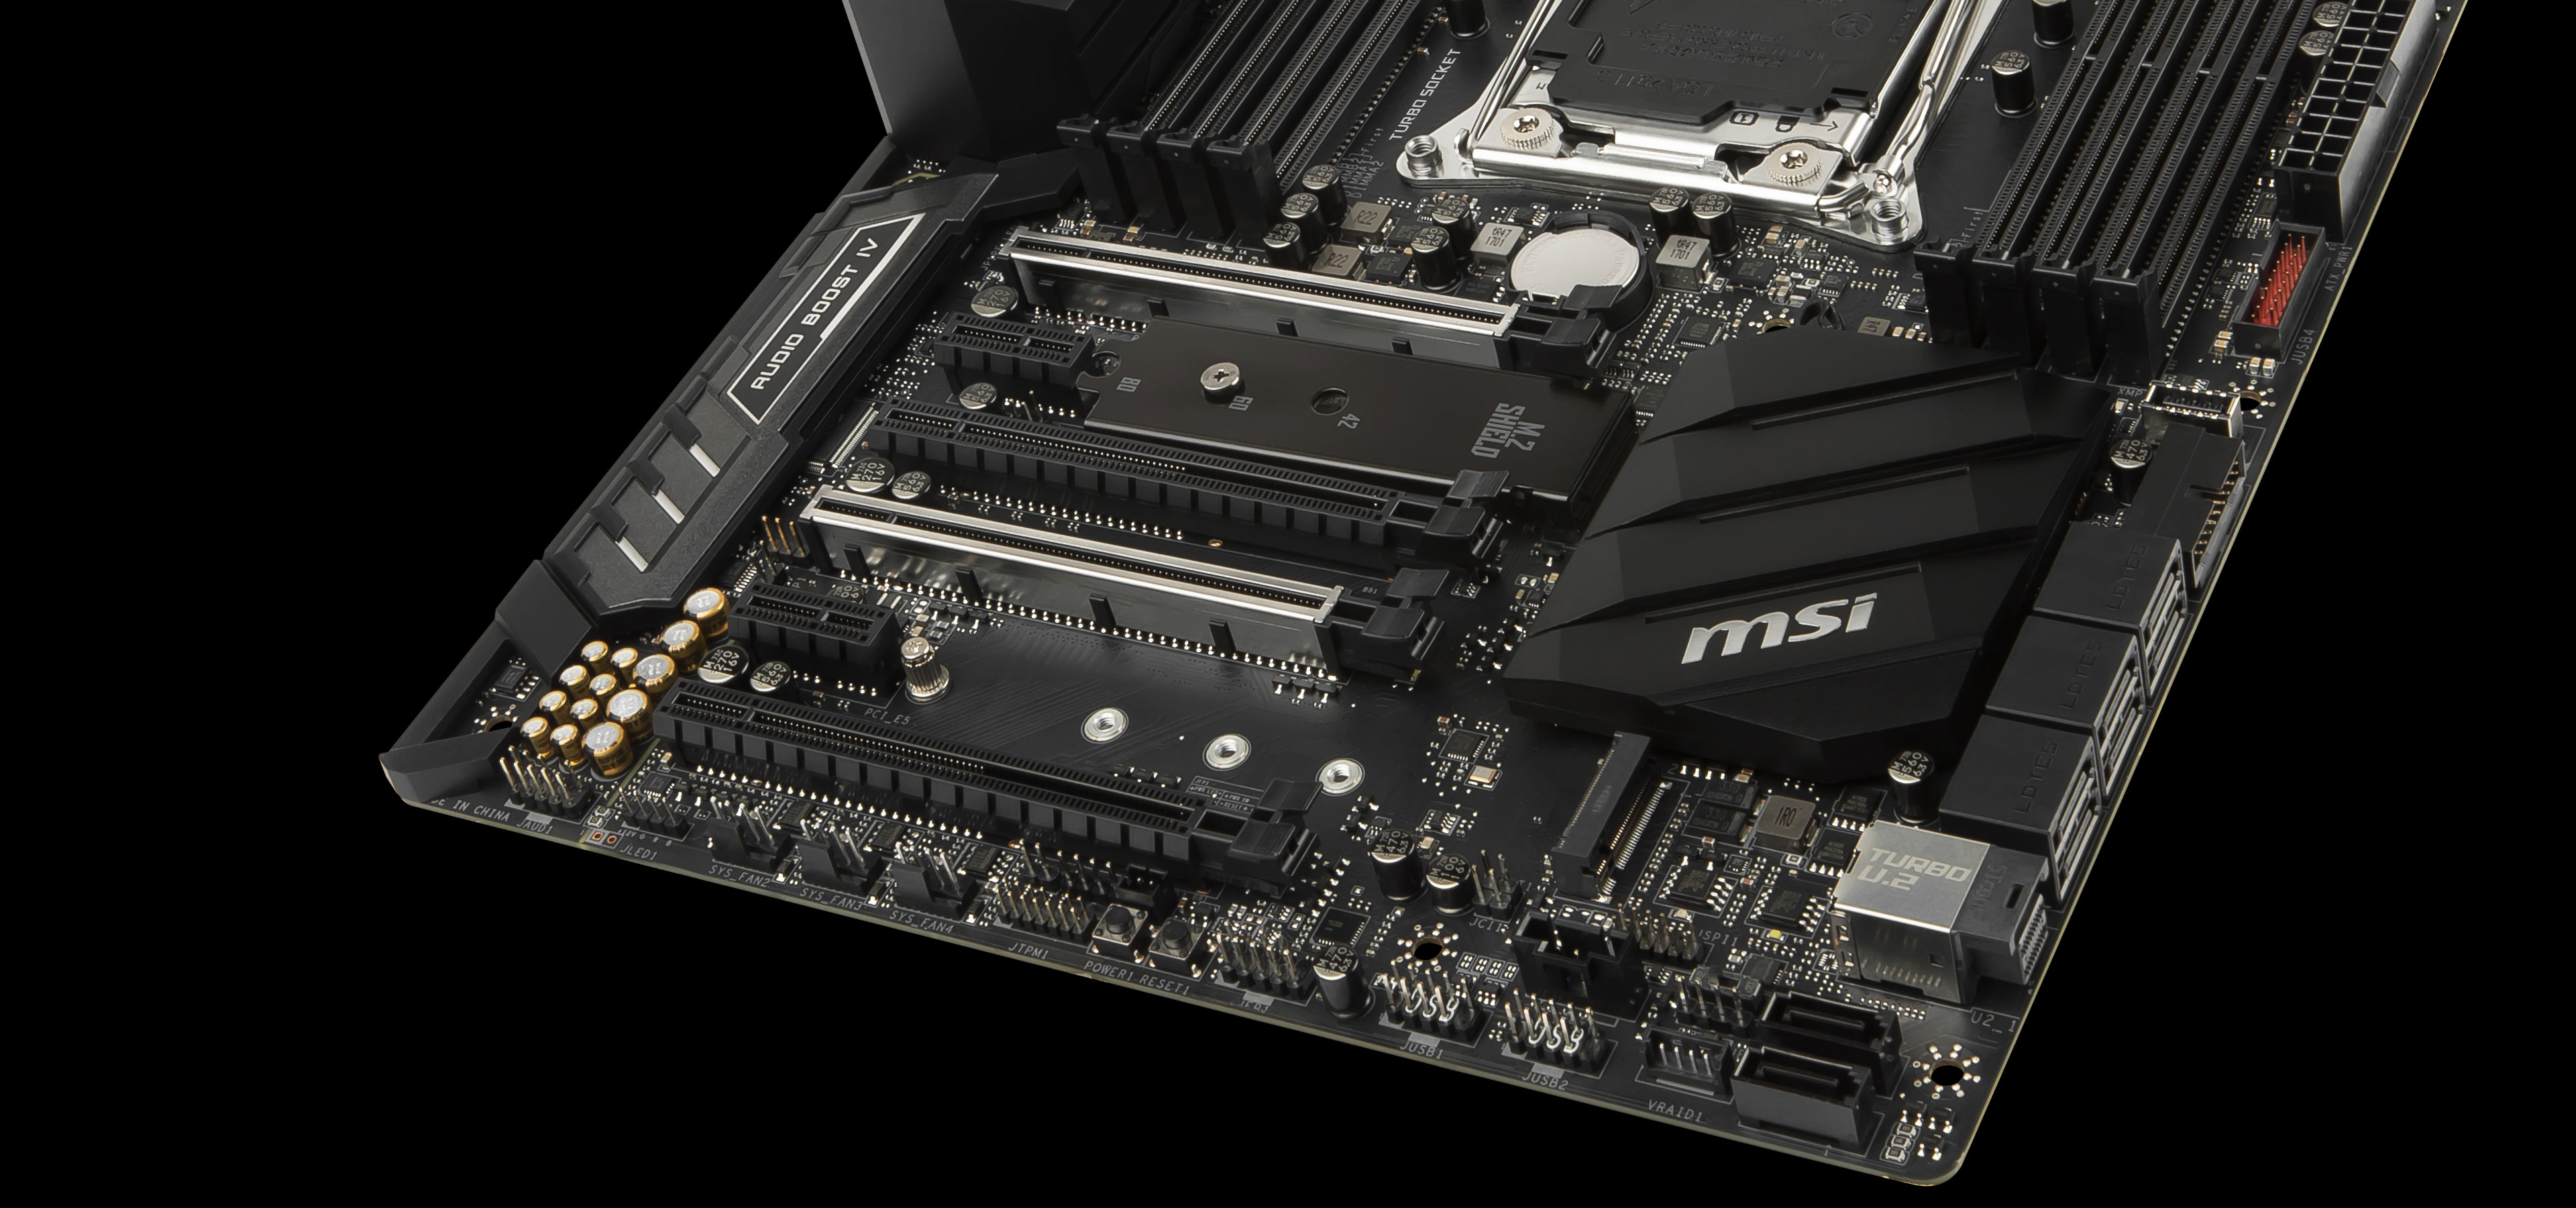 For Design Workstation Build | MSI X299 SLI PLUS Motherboard | MSI